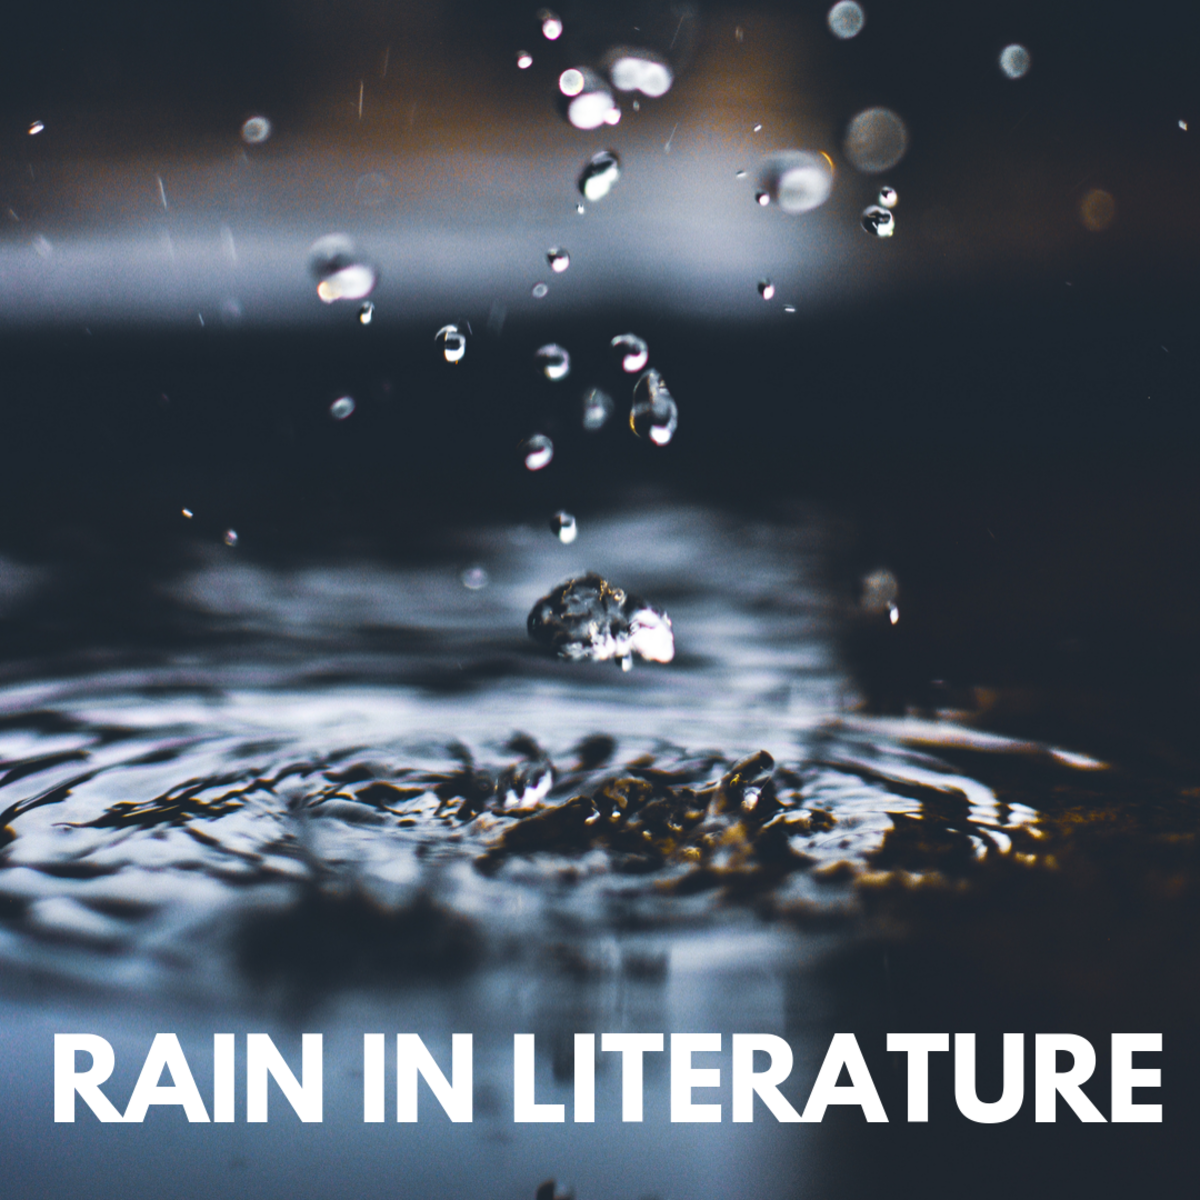 Rain and Literature: How Bad Weather Can Make or Break a Story